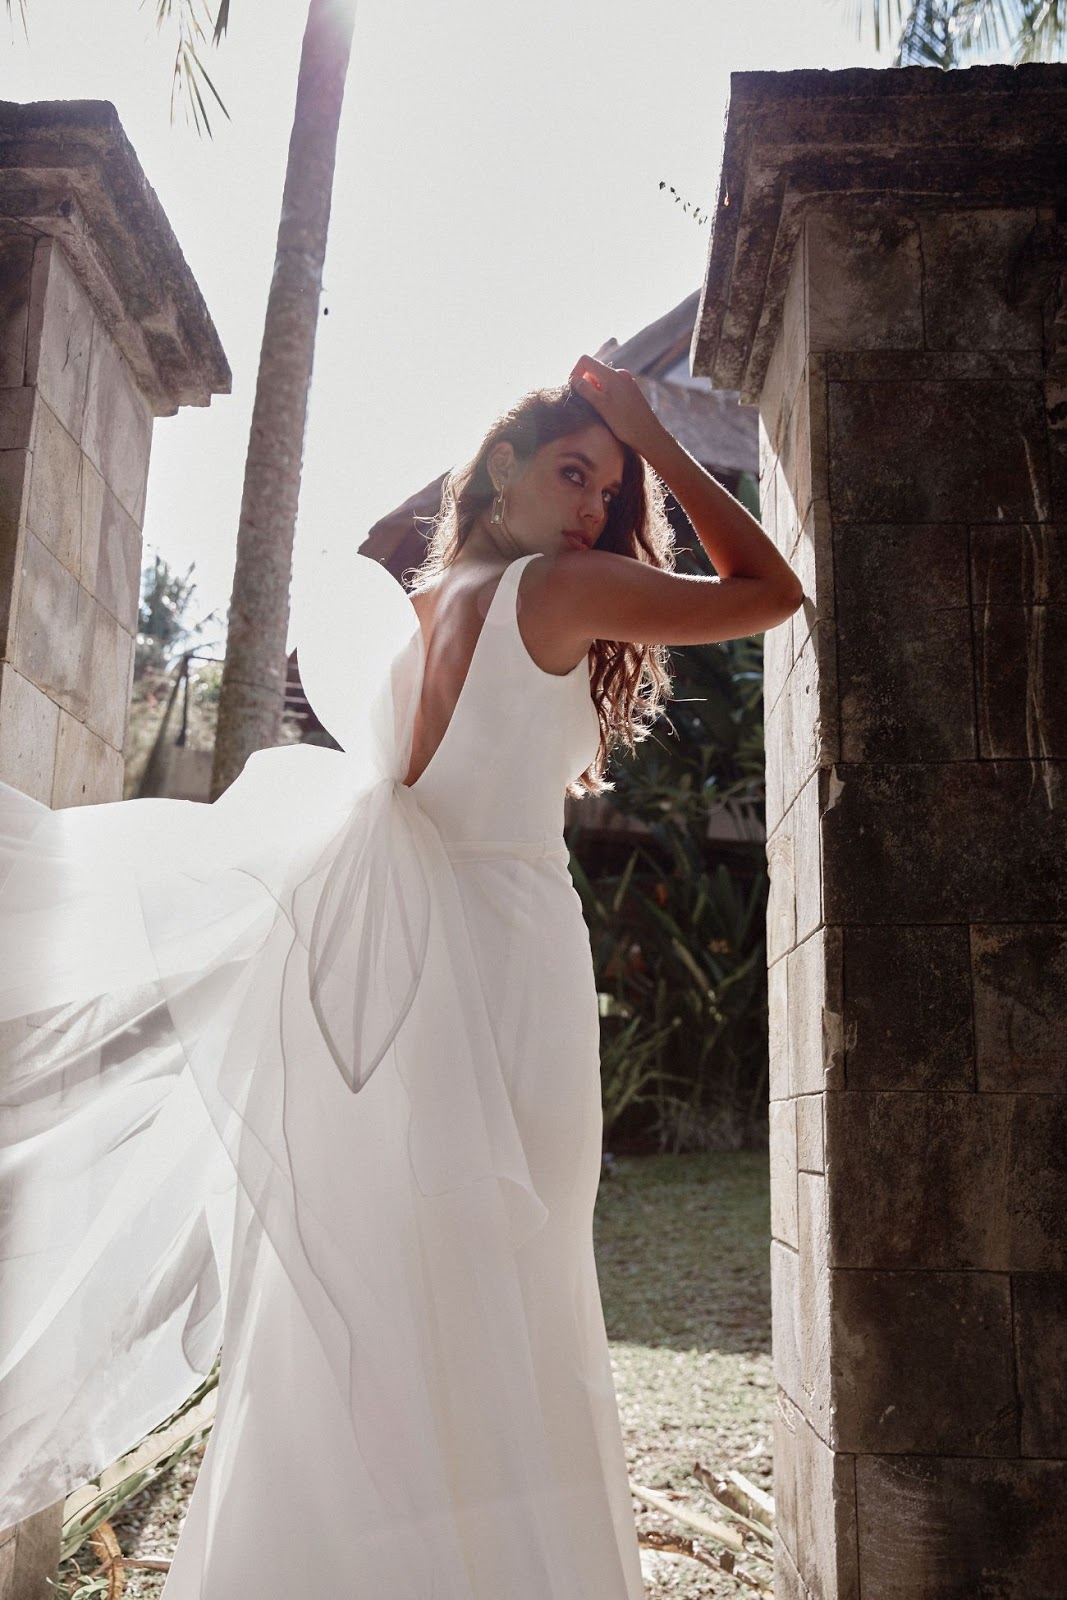 images by Gretl Watson-Blazewicz bridal gowns wedding dresses bride accessories australian designer